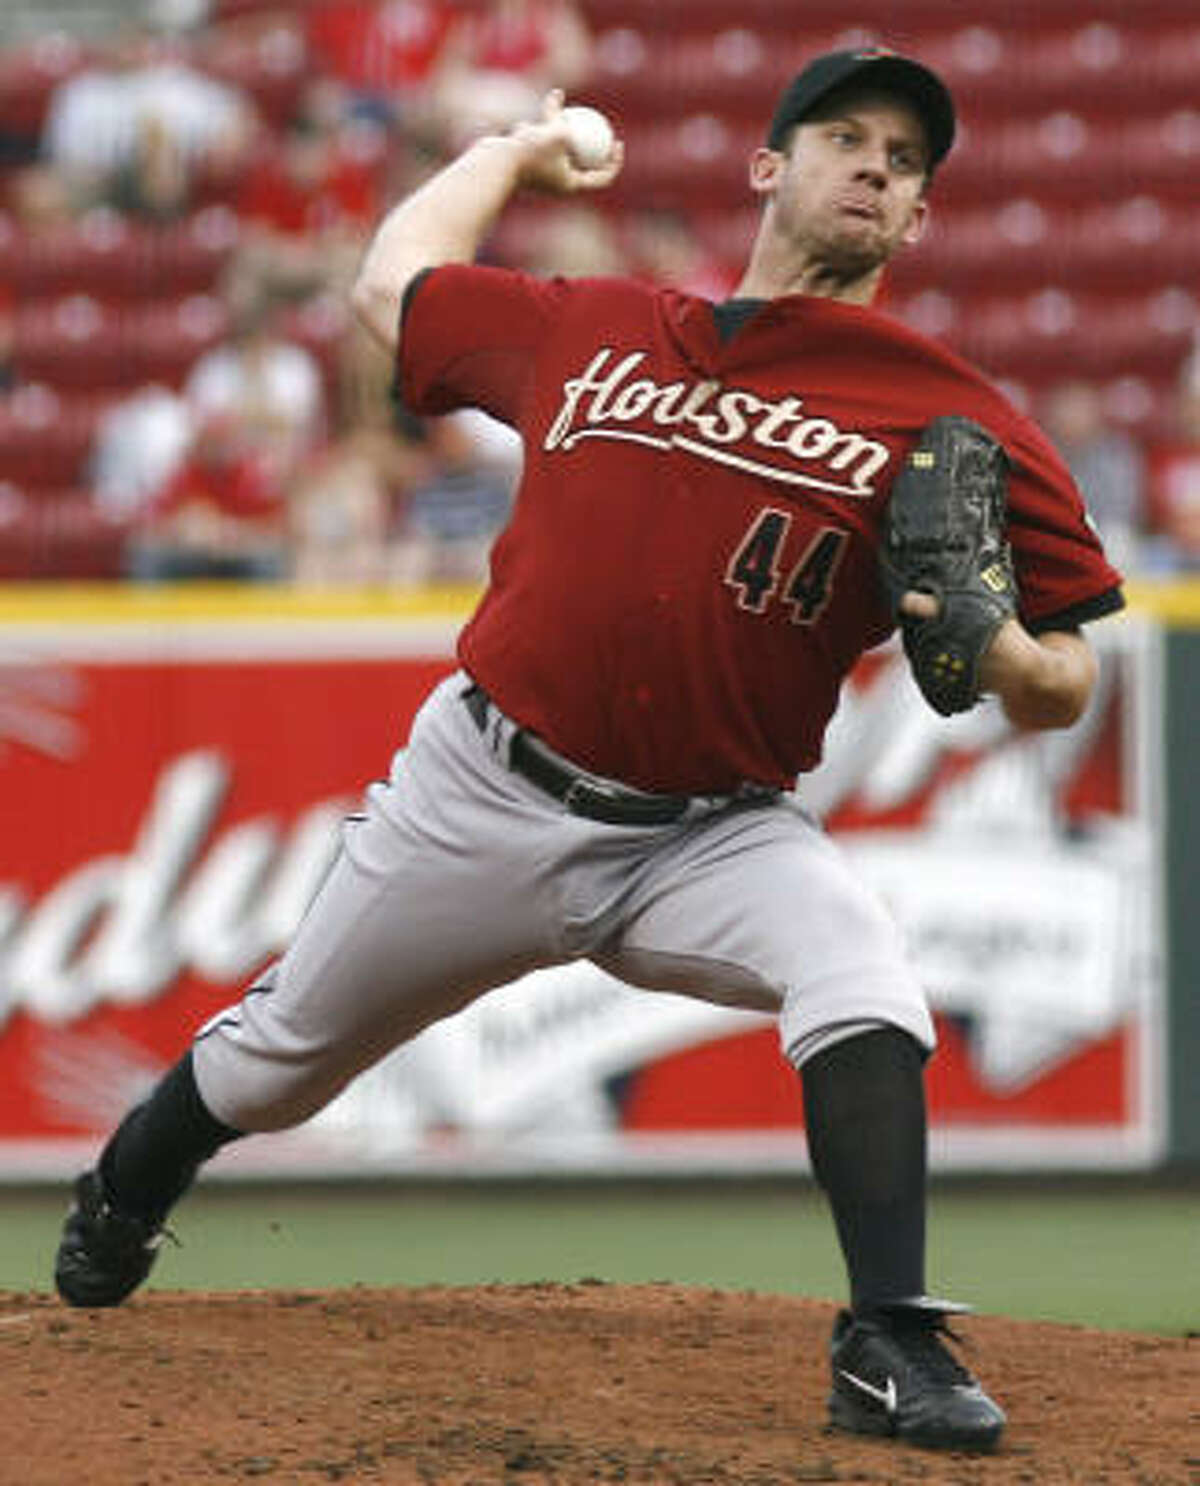 Astros starter Roy Oswalt received a no-decision after allowing one run on six hits in seven innings in Monday's 4-1 win over the Reds in Cincinnati.